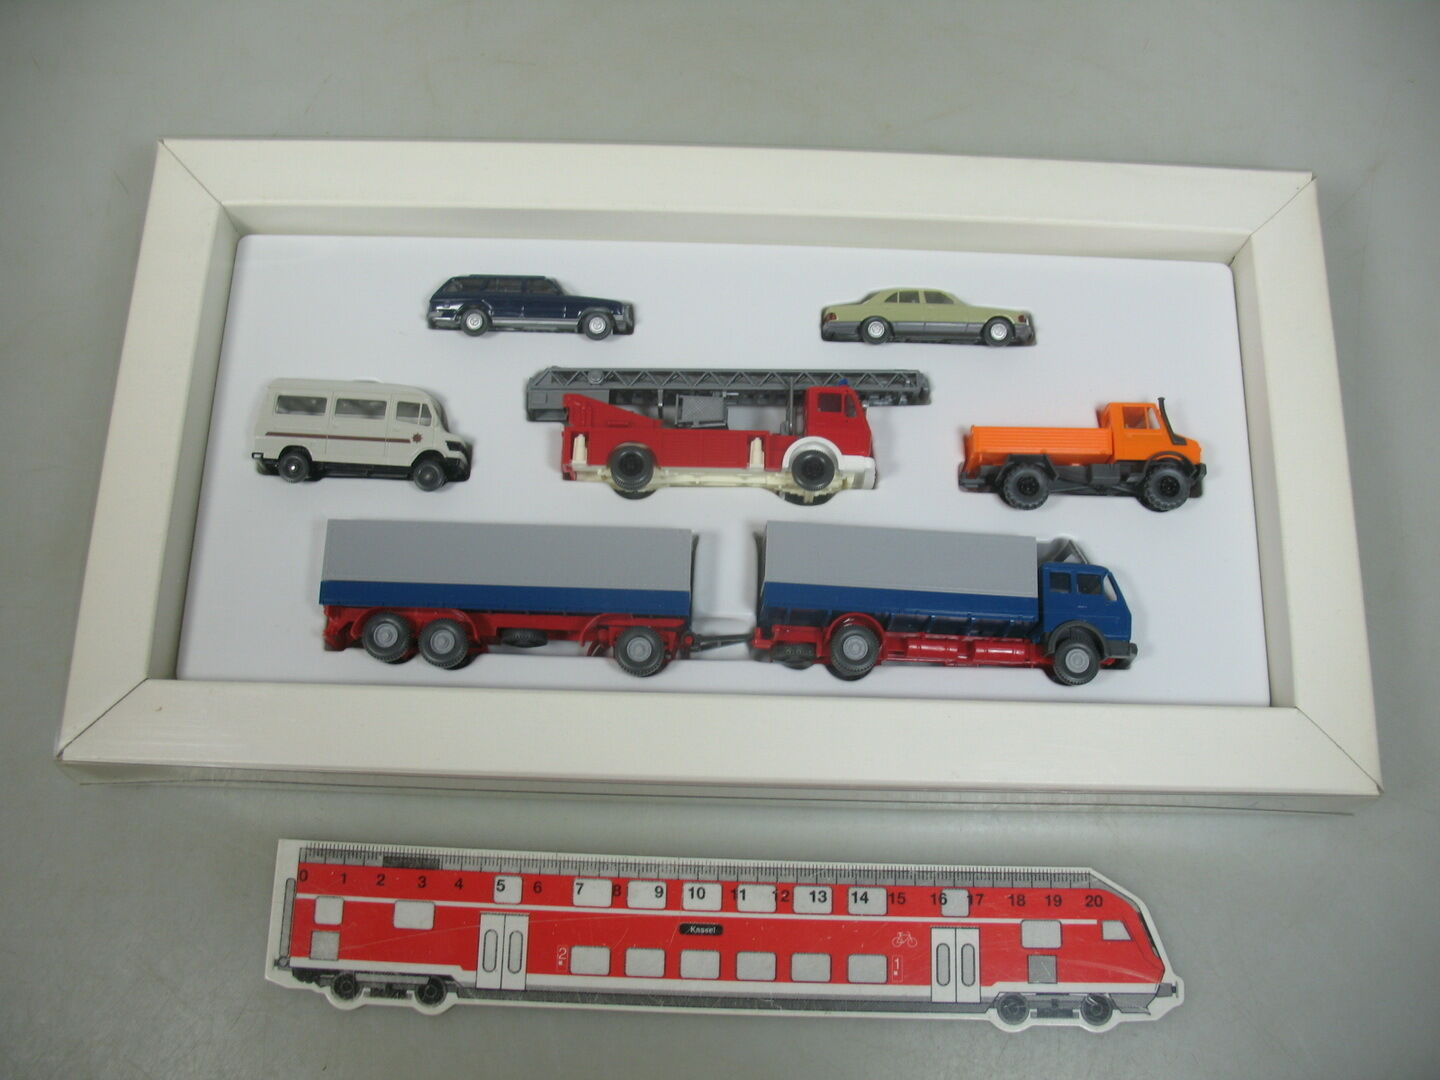 Ai59-1  wiking h0 set Mercedes-Benz MB  camion  unimog pompiers   voiture etc, Neuw  OVP